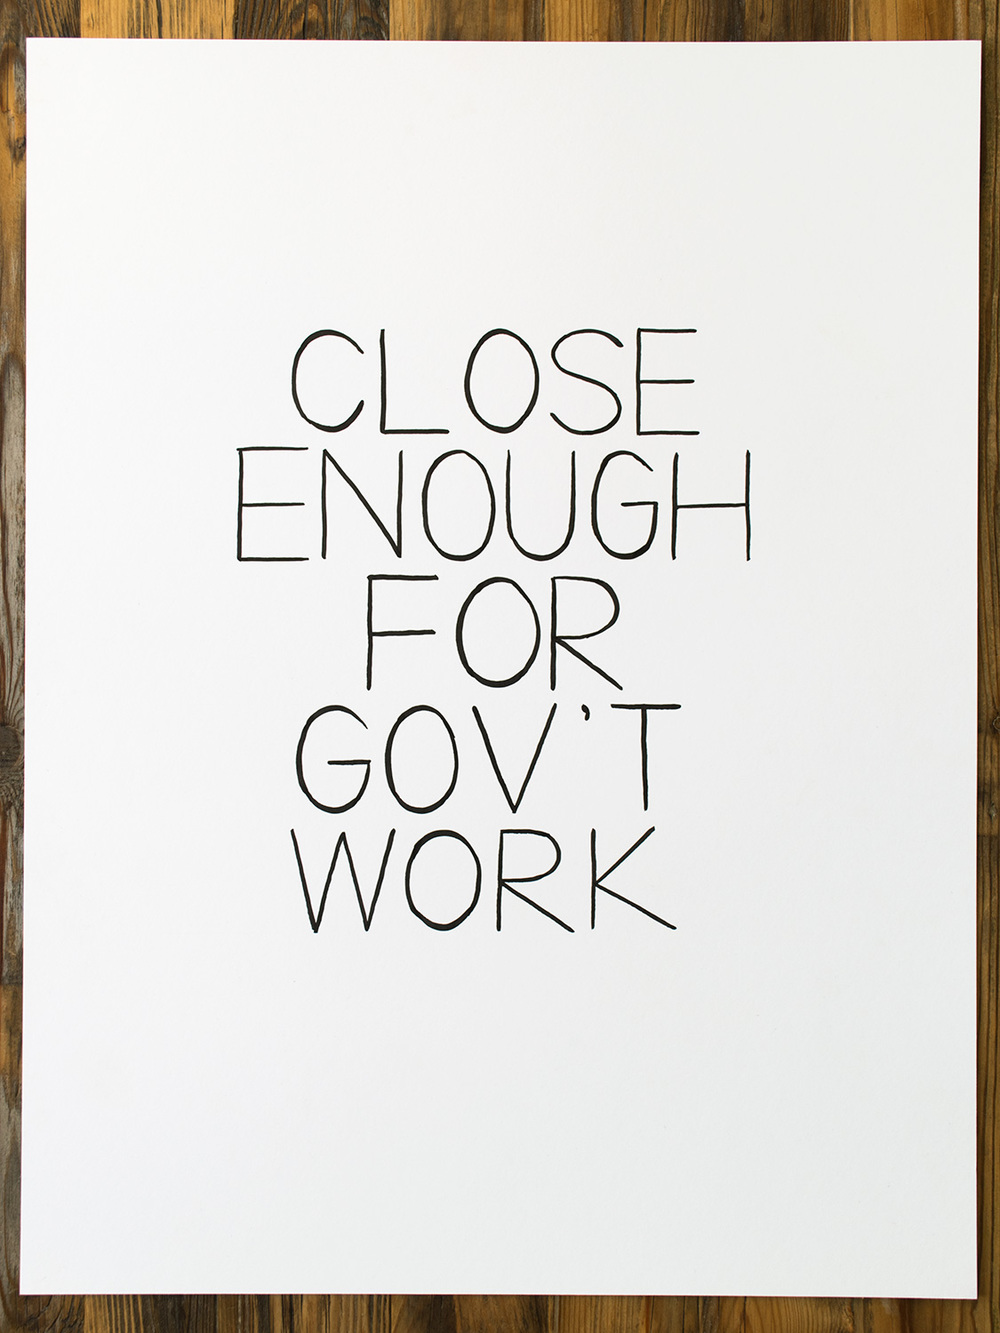 close_enough_for_govt_work-1500x1125.jpg